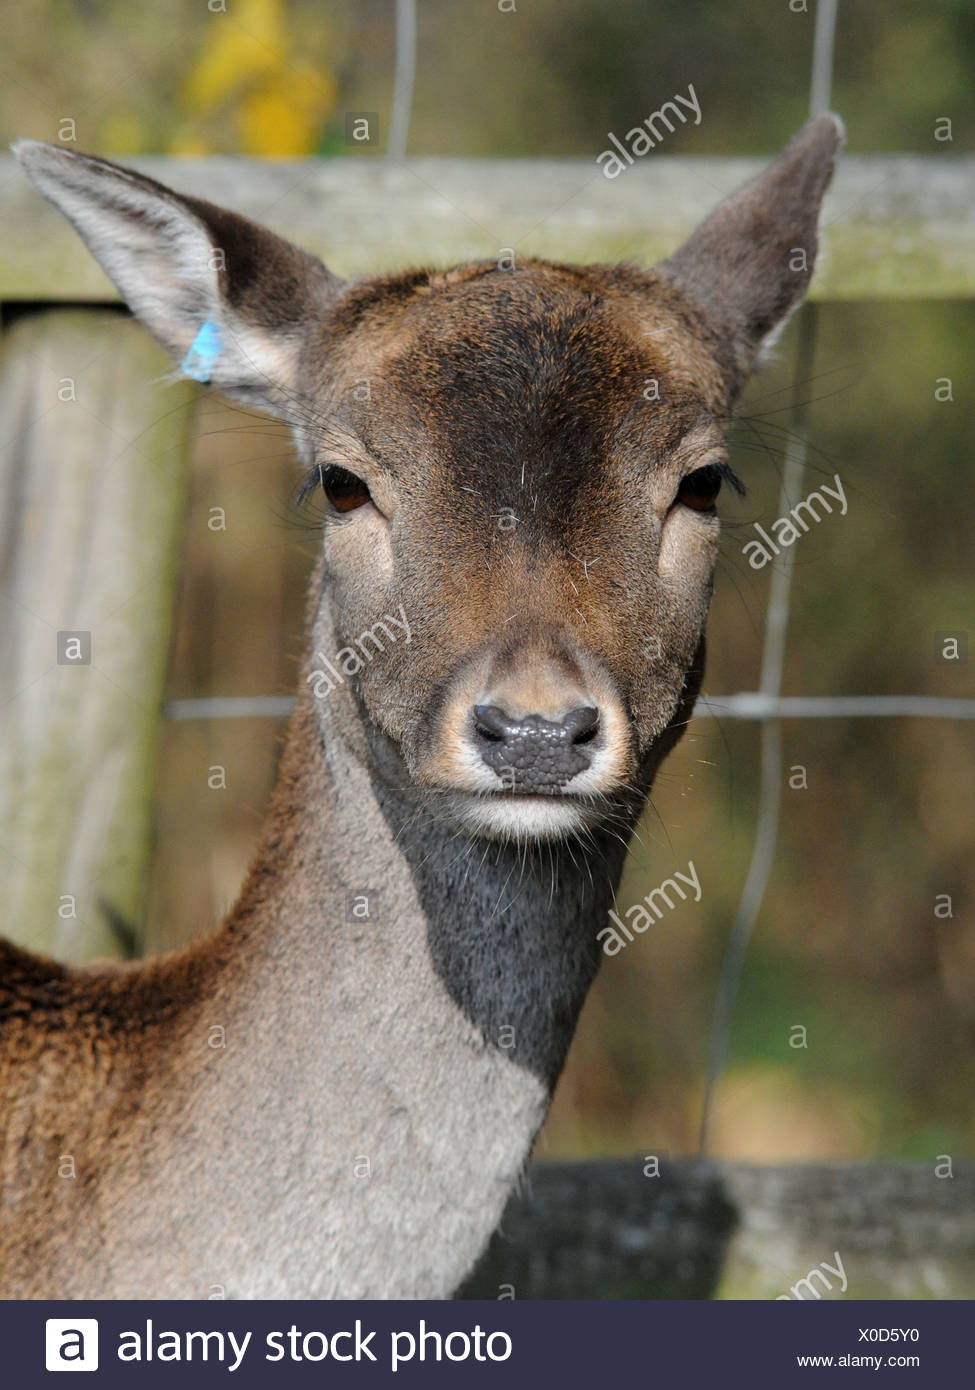 Wild deer in captivity with an ear tag. Stock Photo